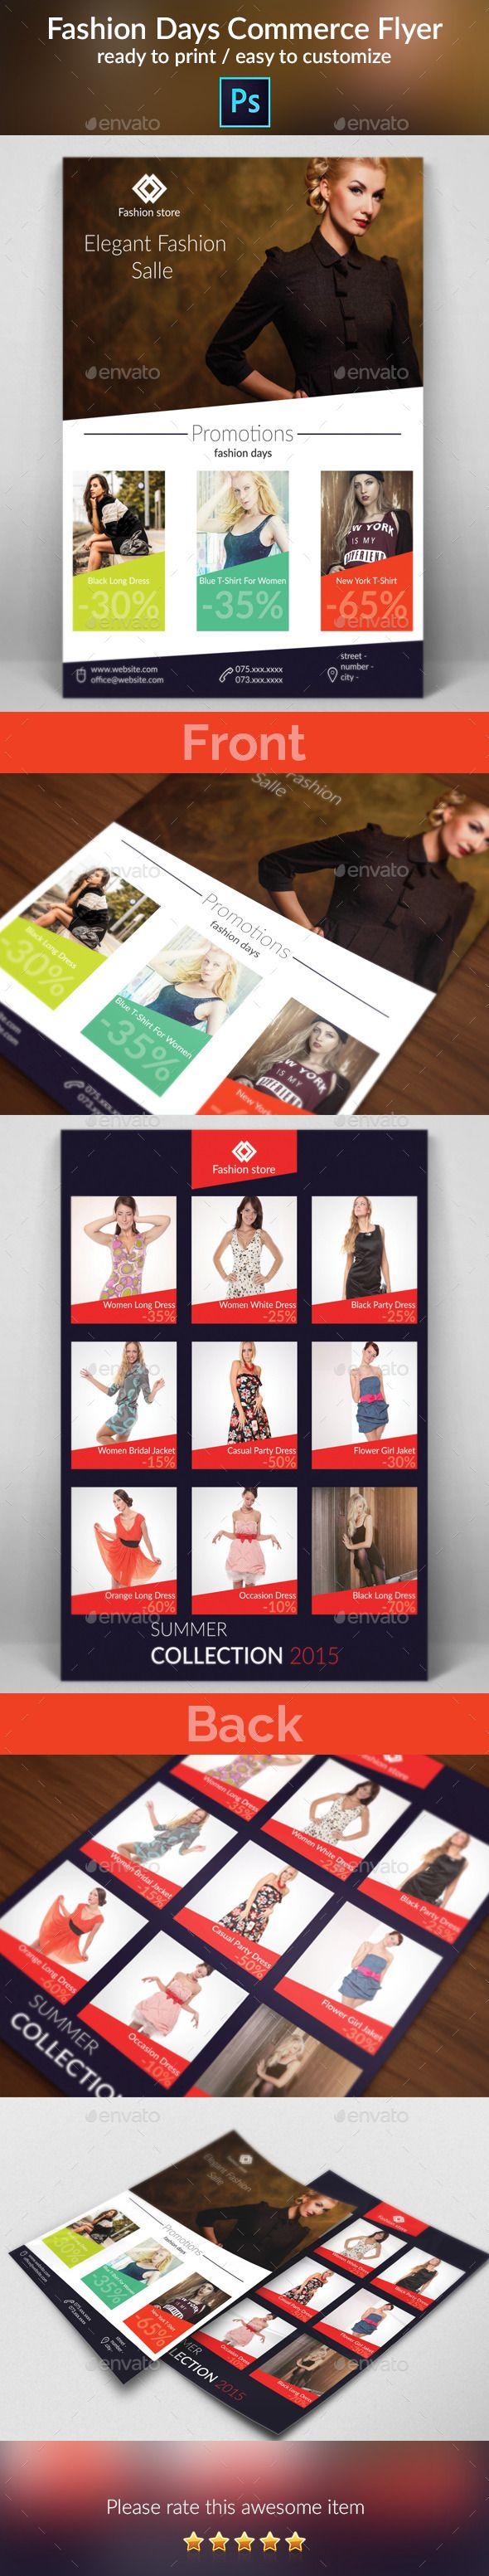 Fashion Days Commerce Flyer — Photoshop PSD #fashion flyer #women flyer • Available here → https://graphicriver.net/item/fashion-days-commerce-flyer/9518930?ref=pxcr